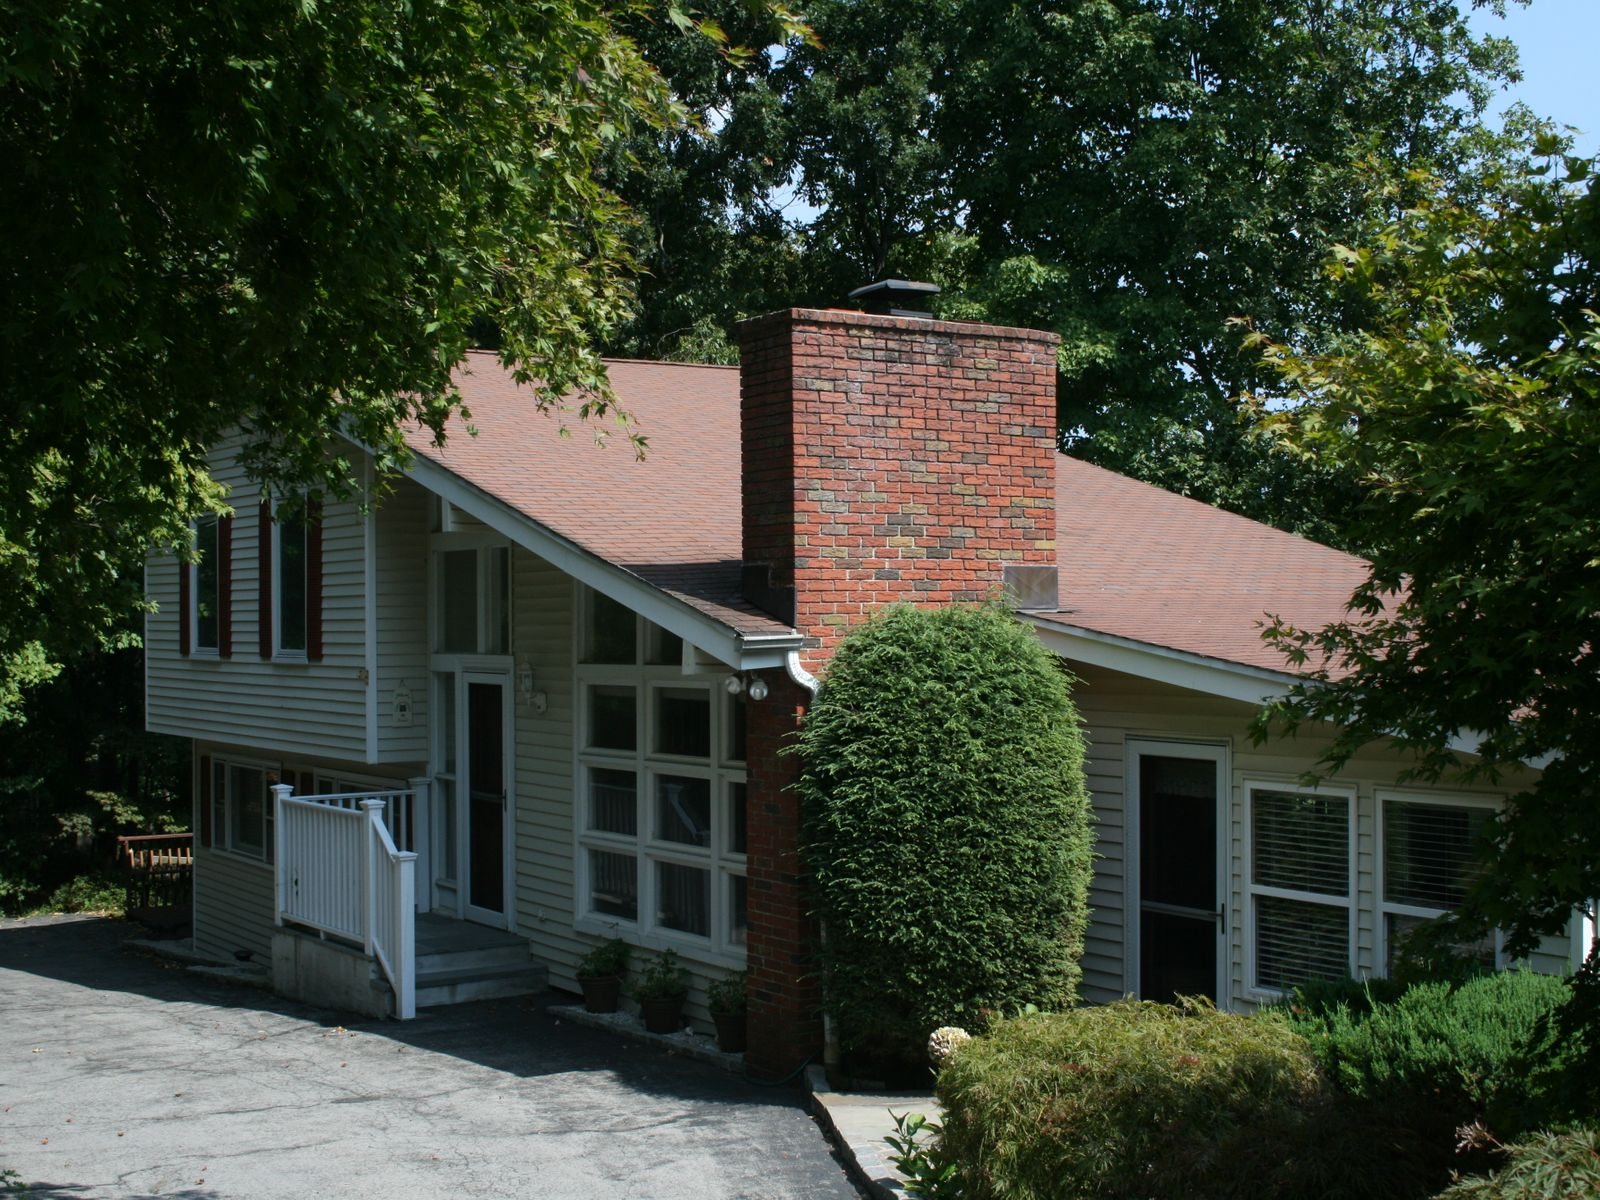 Big Sky, Cos Cob CT Single Family Home - Greenwich Real Estate